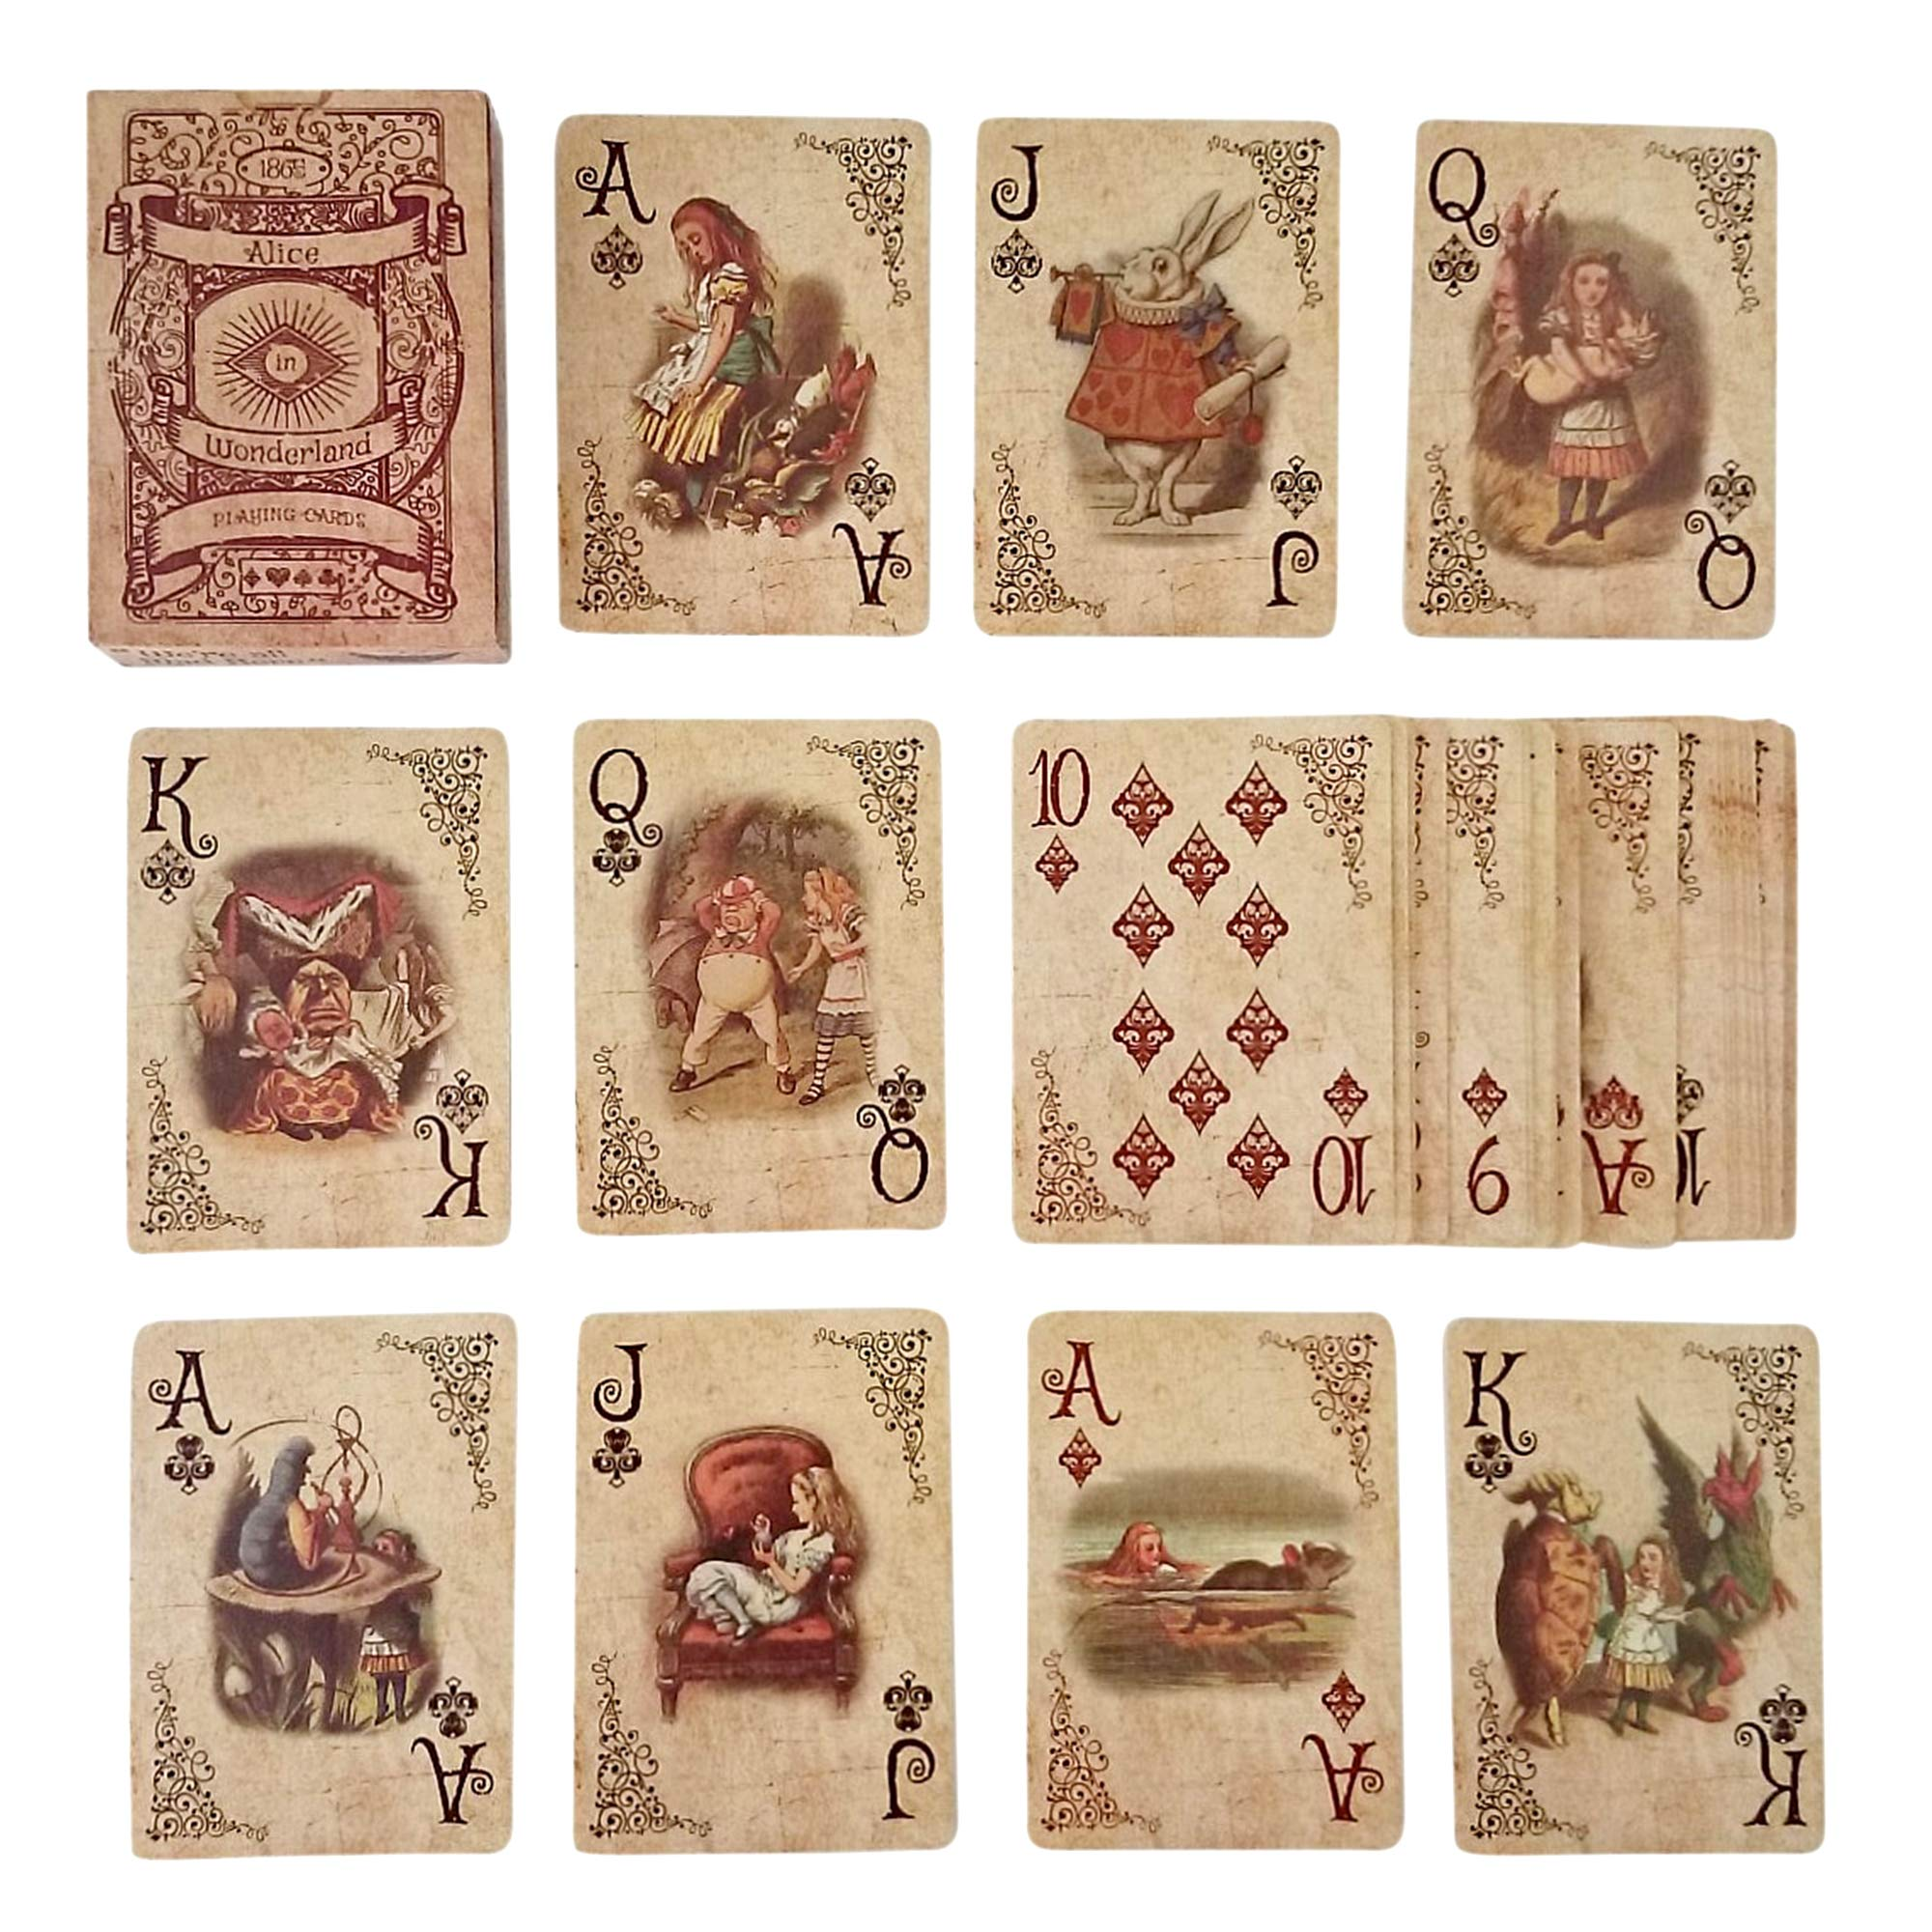 ASVP Shop Alice In Wonderland Playing Cards - Full Set is Ideal for Themed Parties, Props, Theme, and Games by ASVP Shop